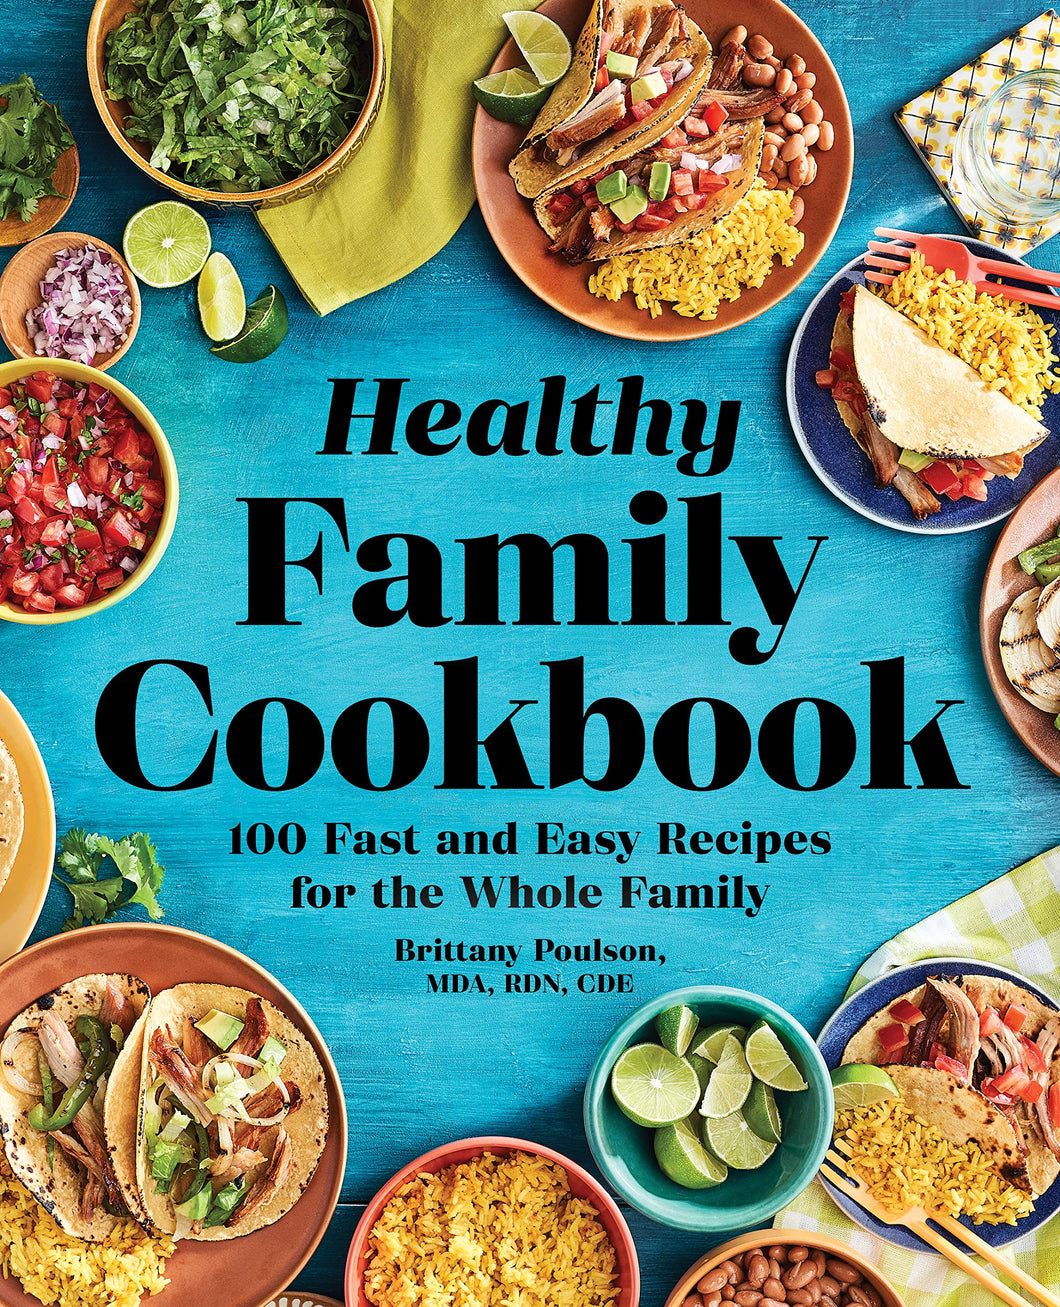 The Healthy Family Cookbook: 100 Fast and Easy Recipes for the Whole Family - Tolerant Planet